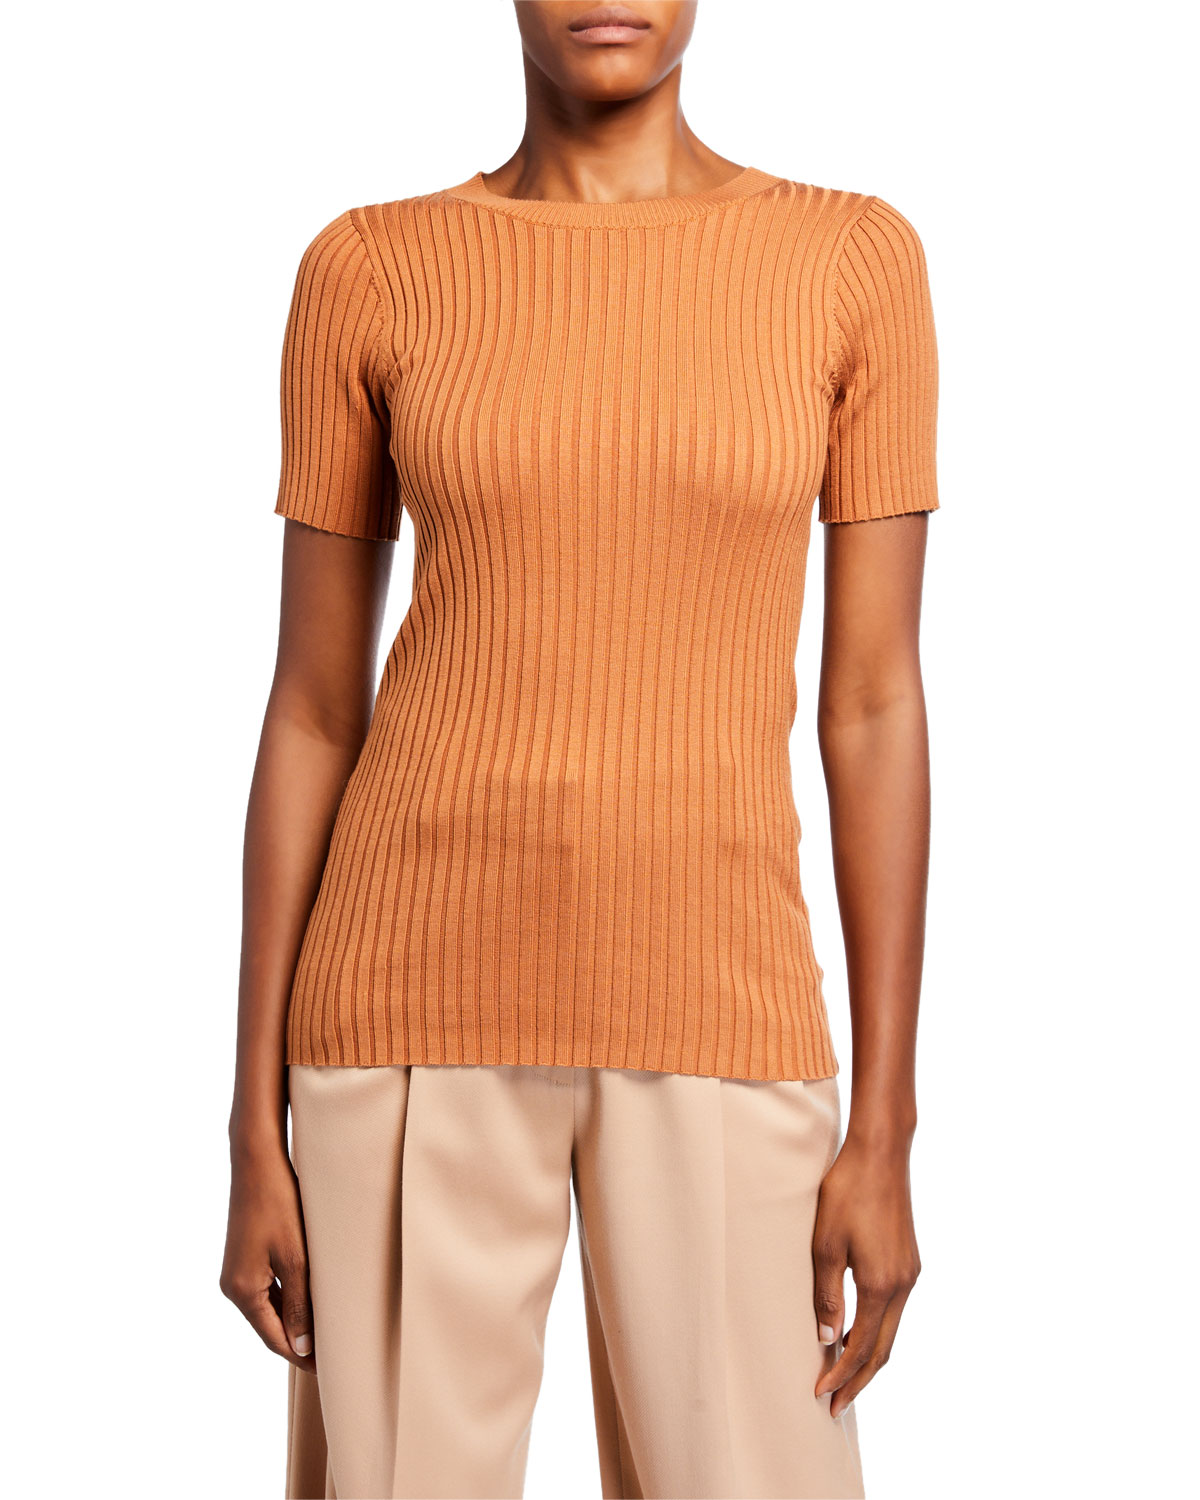 Sies Marjan Ribbed Silk Knit T-Shirt